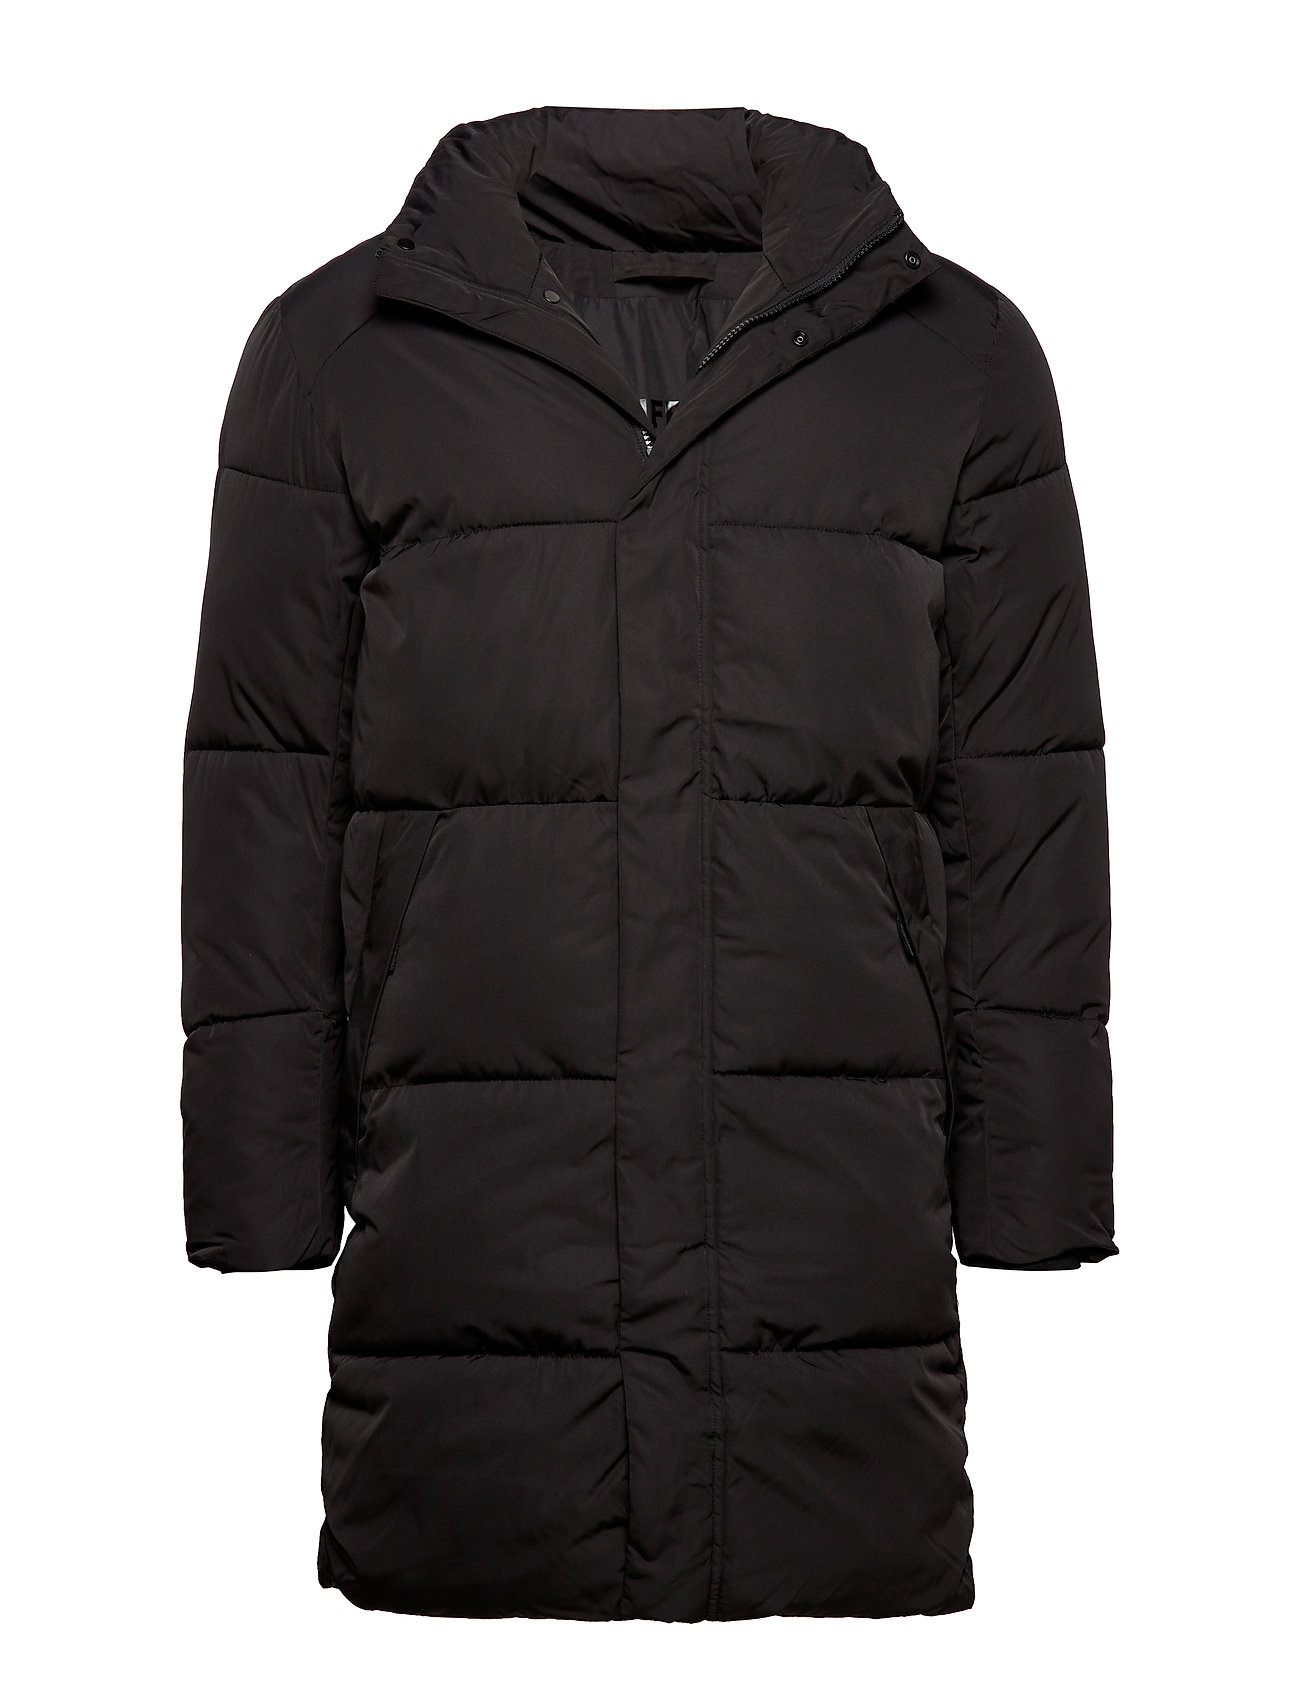 Selected Homme SLHPUFFER PARKA W - BLACK